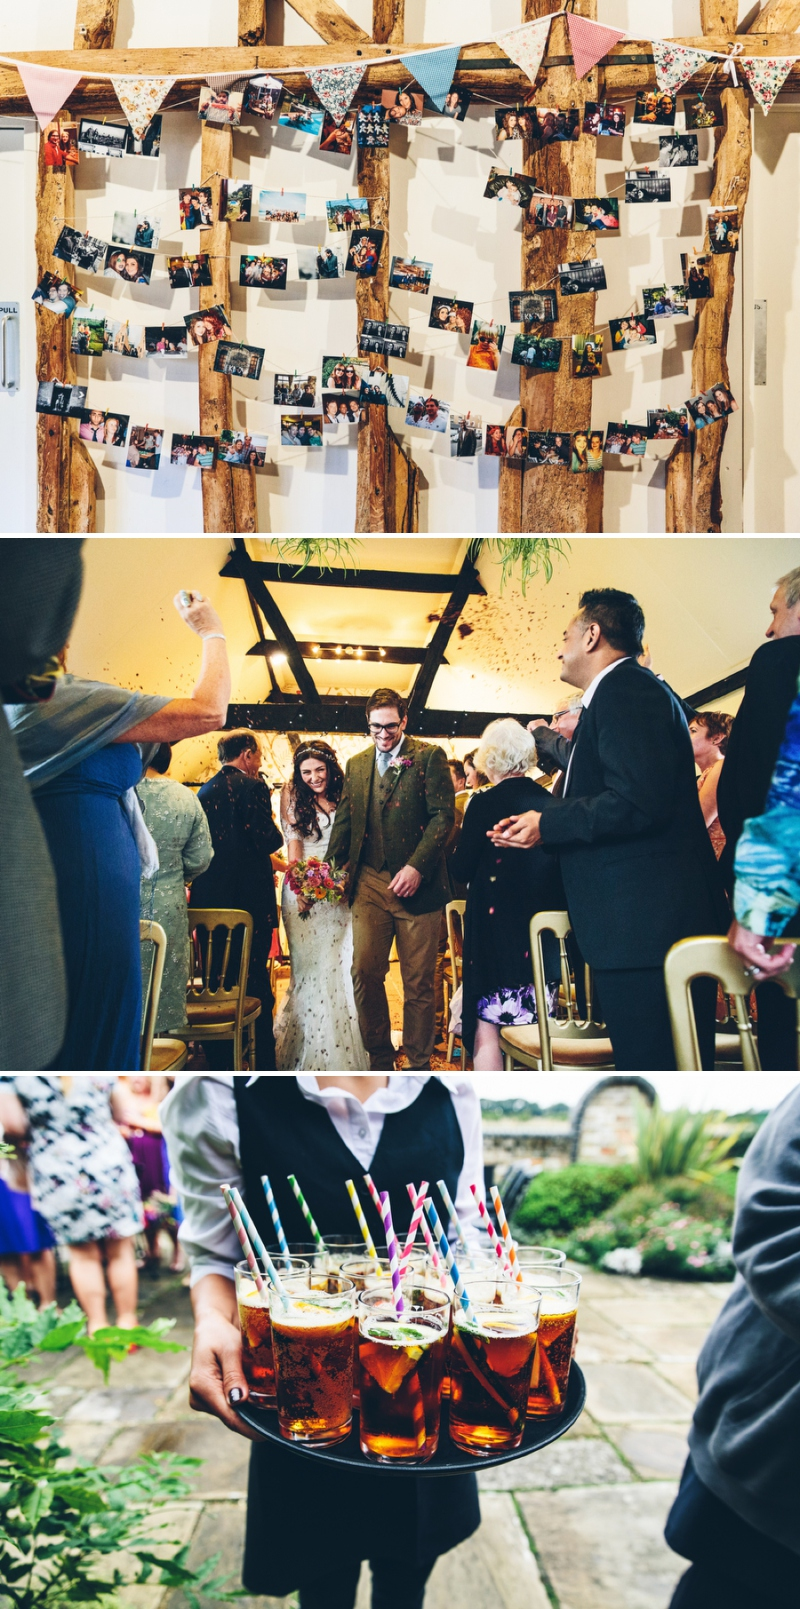 Festival fete style wedding at South farm with Urda gown by Pronovias by Mister Phill Photography_0550